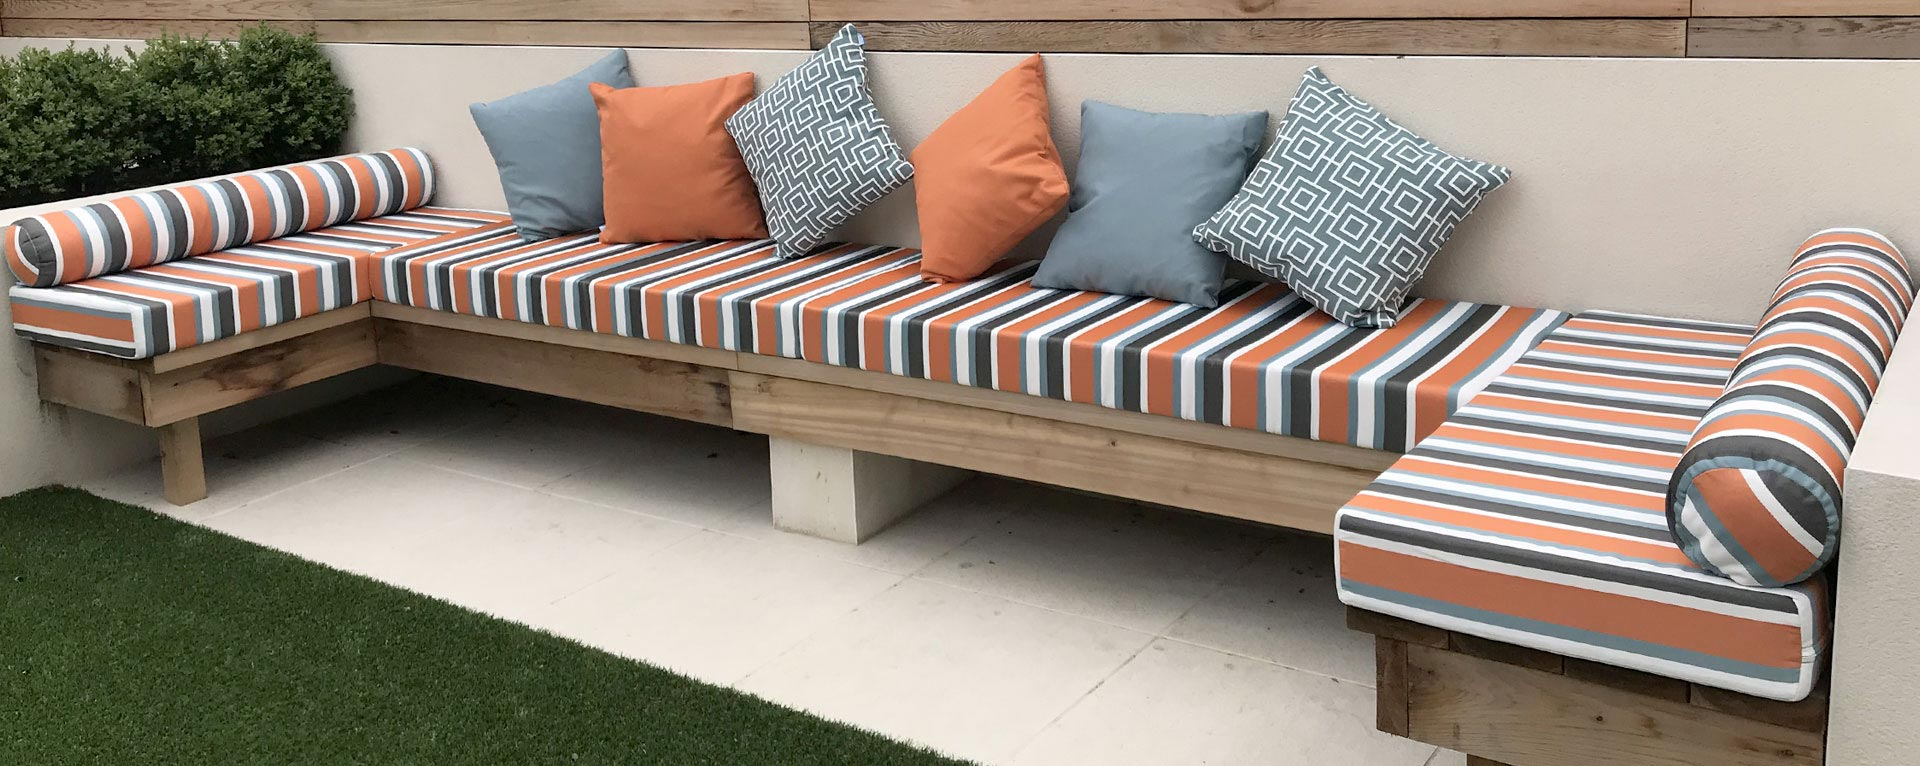 Bespoke Made-to-measure Outdoor Cushions